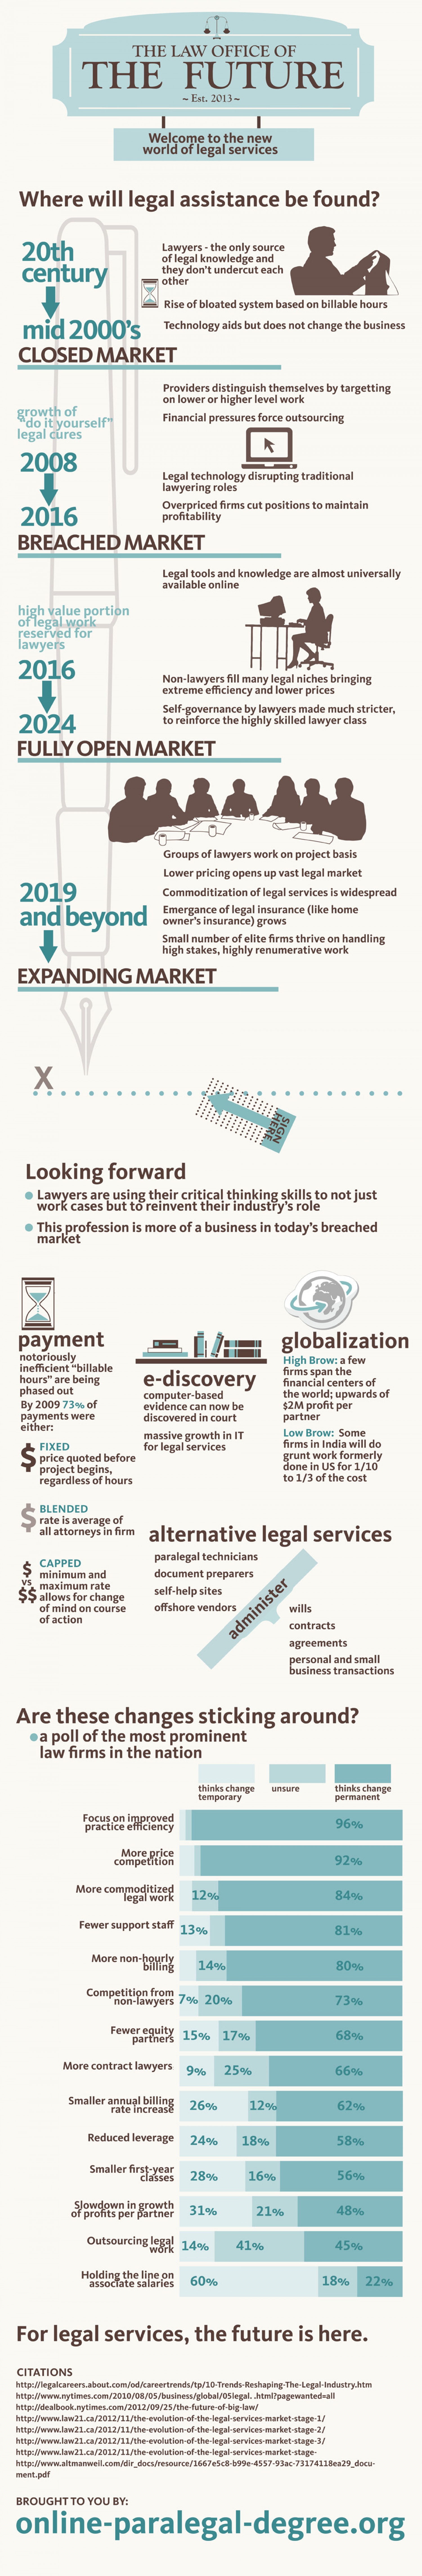 The Law Office of the Future Infographic